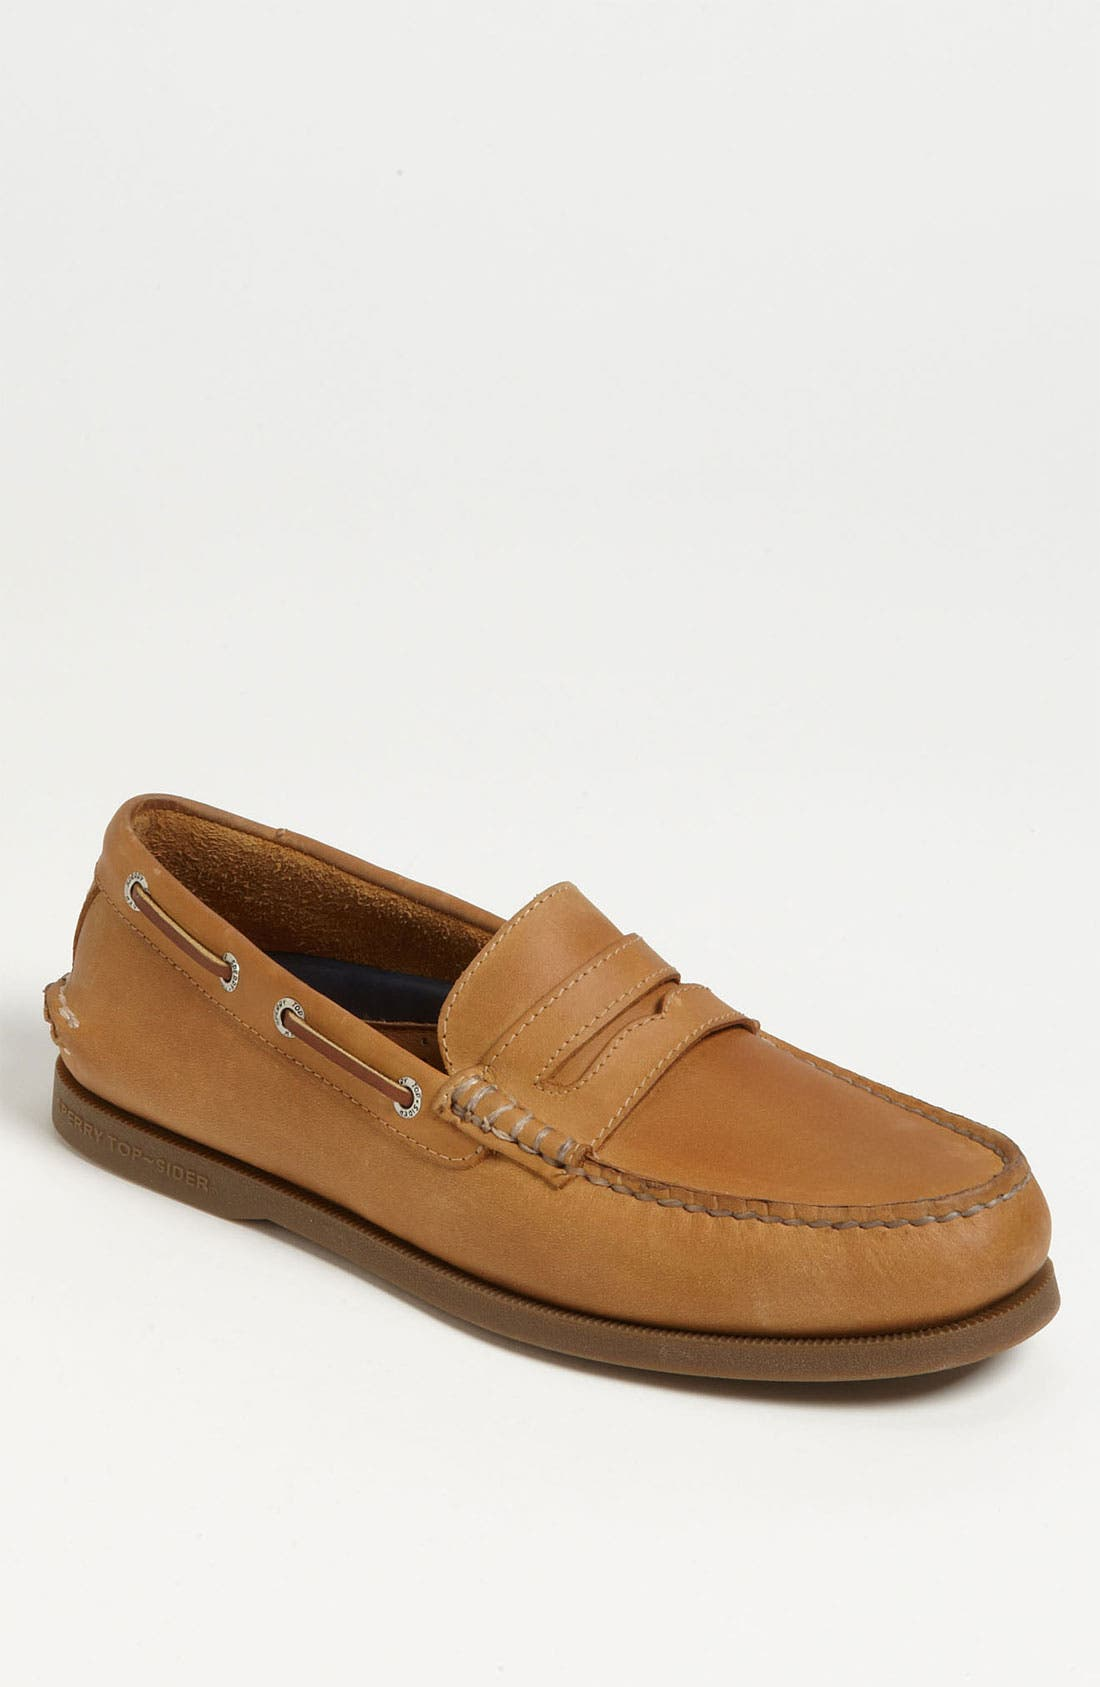 Alternate Image 1 Selected - Sperry Top-Sider® 'Authentic Original' Penny Loafer